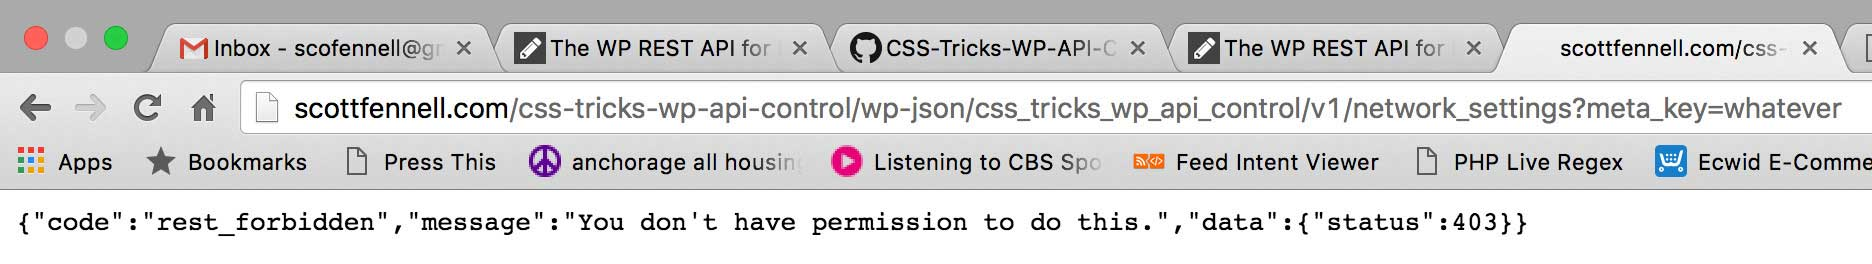 The WP REST API for Remote Control WordPress | CSS-Tricks